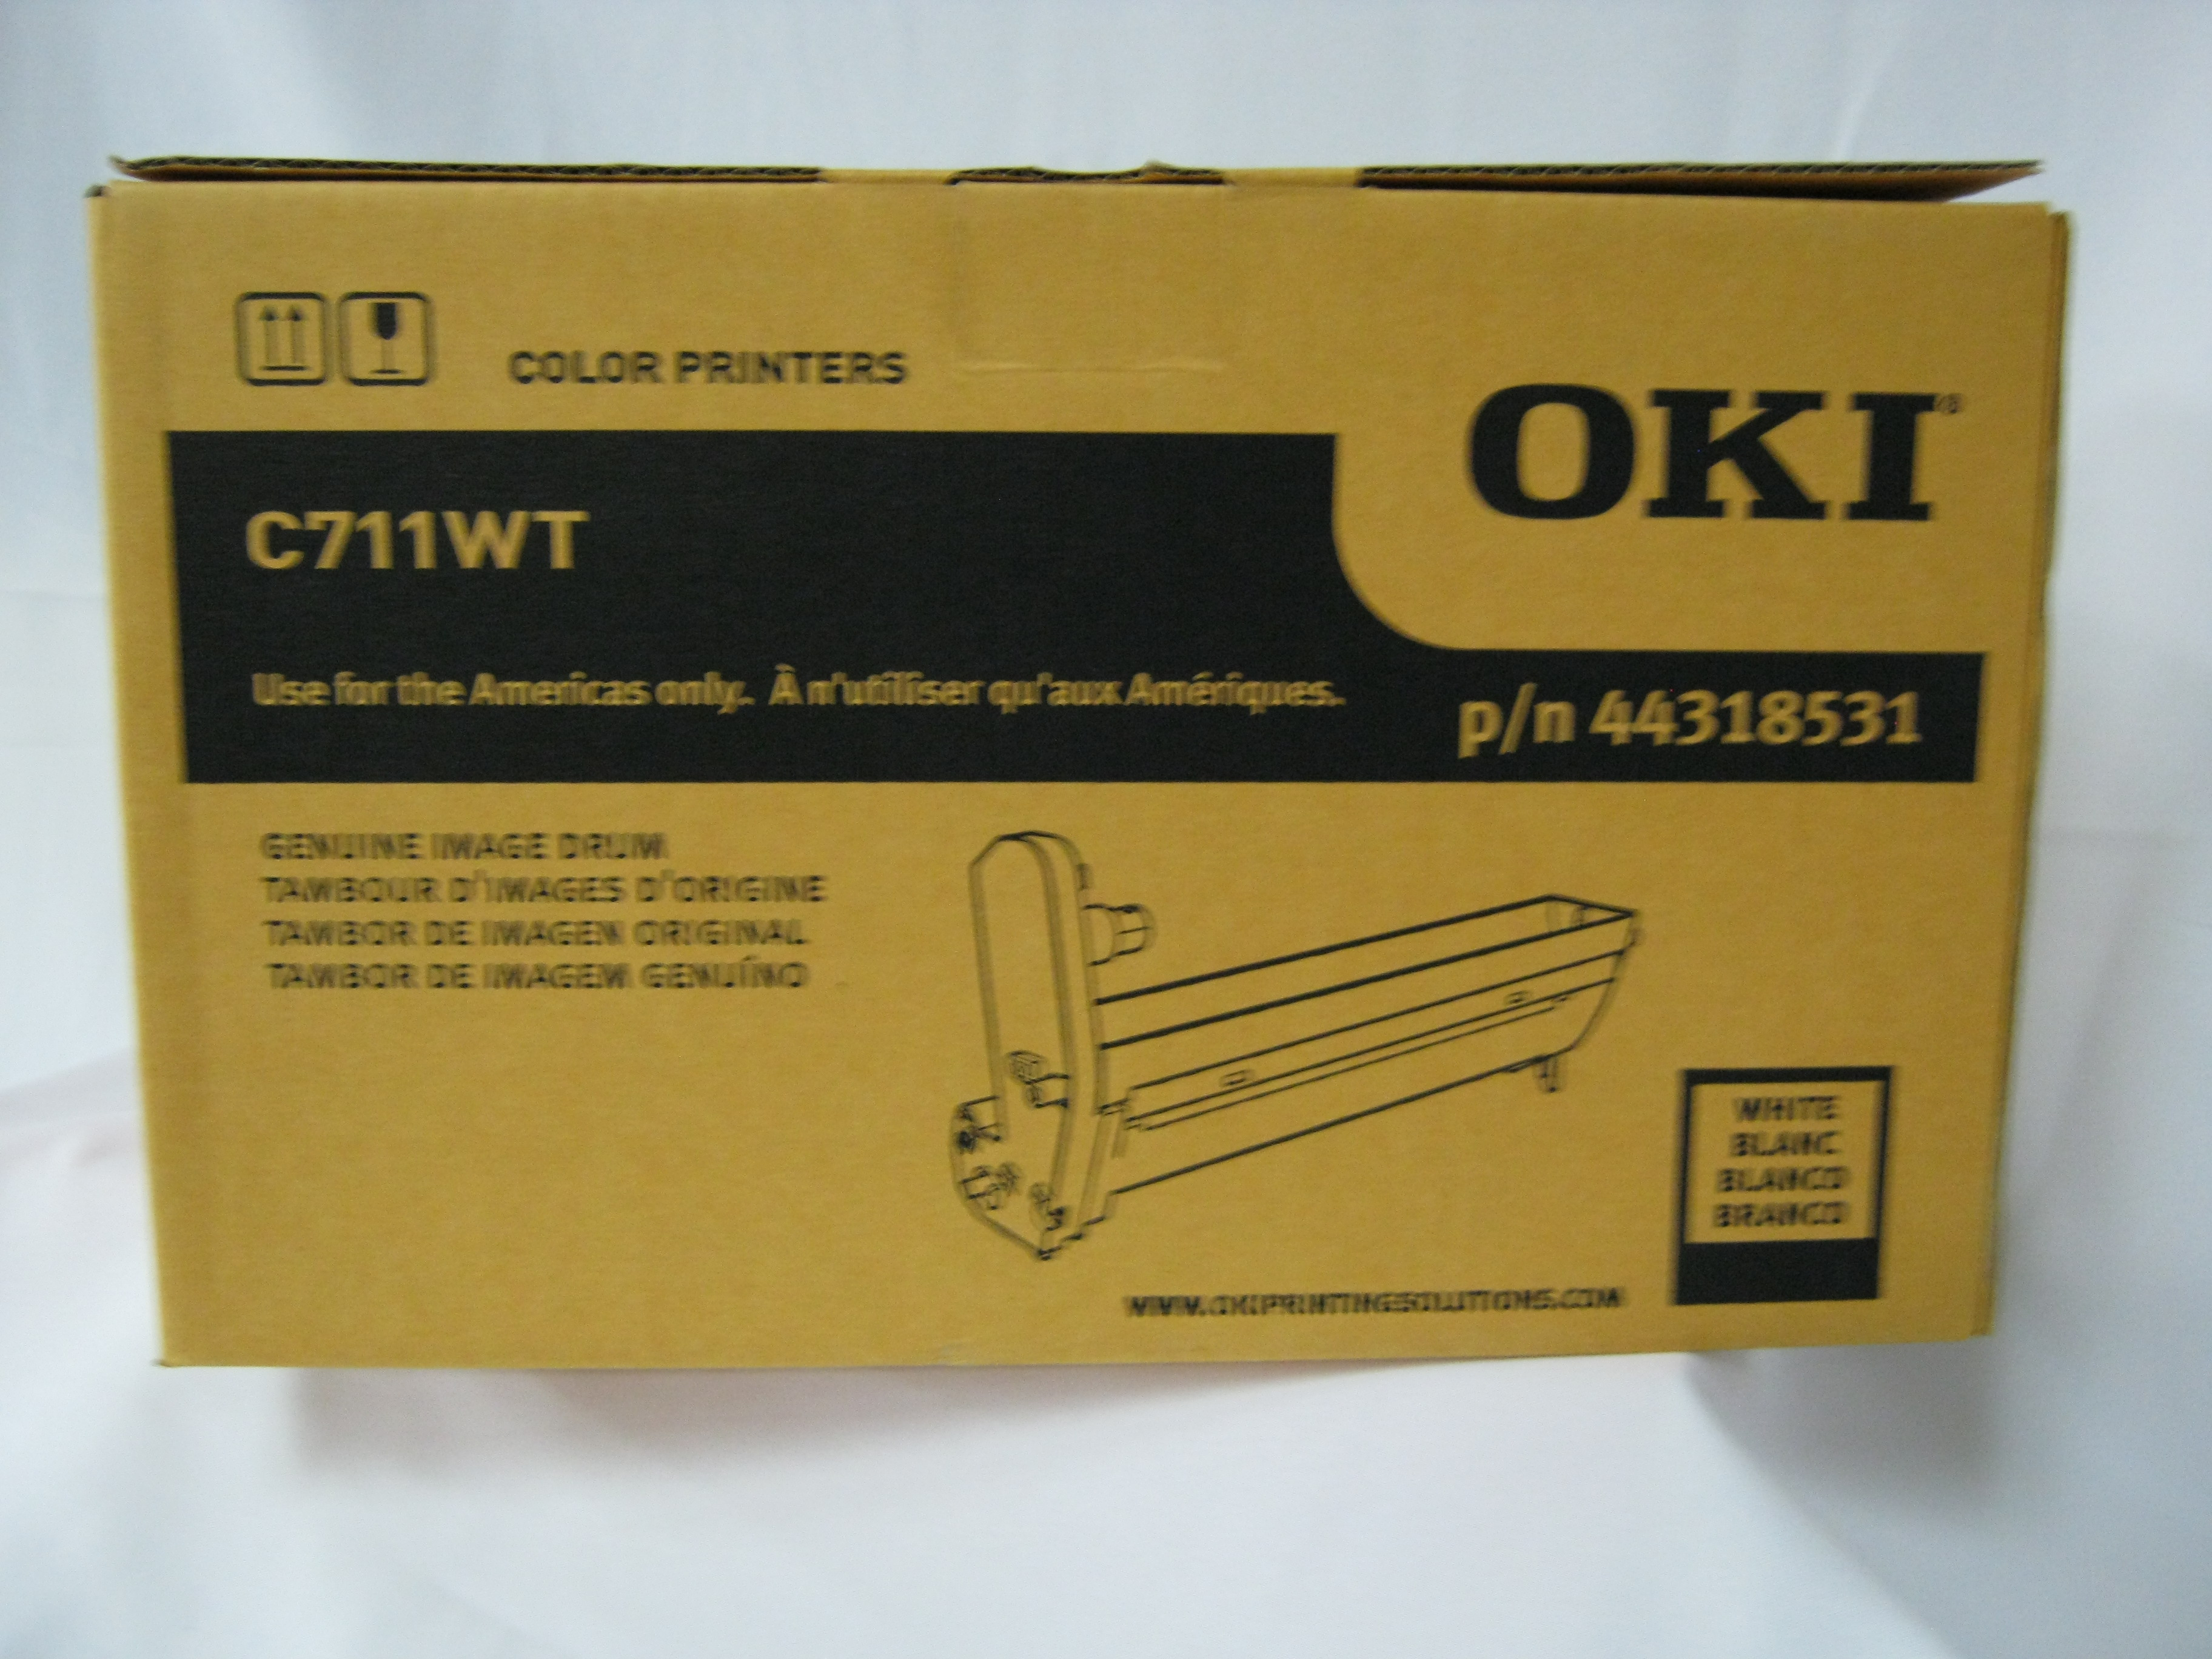 Oki Data C711WT LED CMYW Laser Printer Image Drum